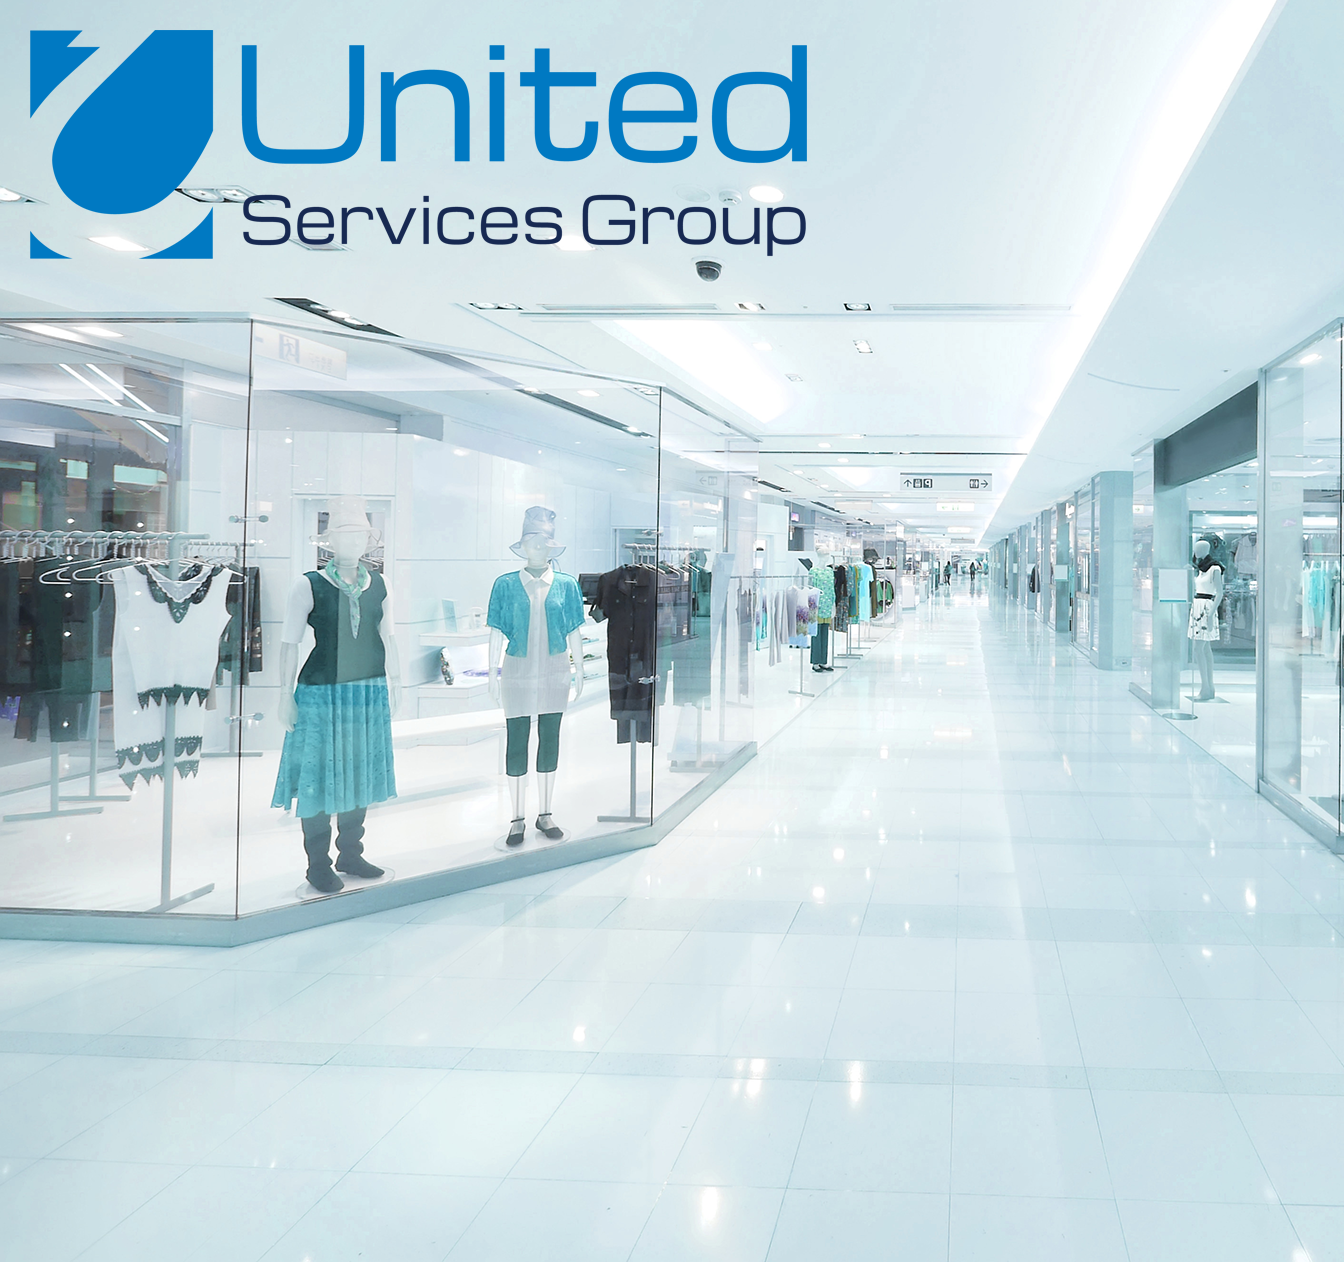 United Services Group IRIS Case Study